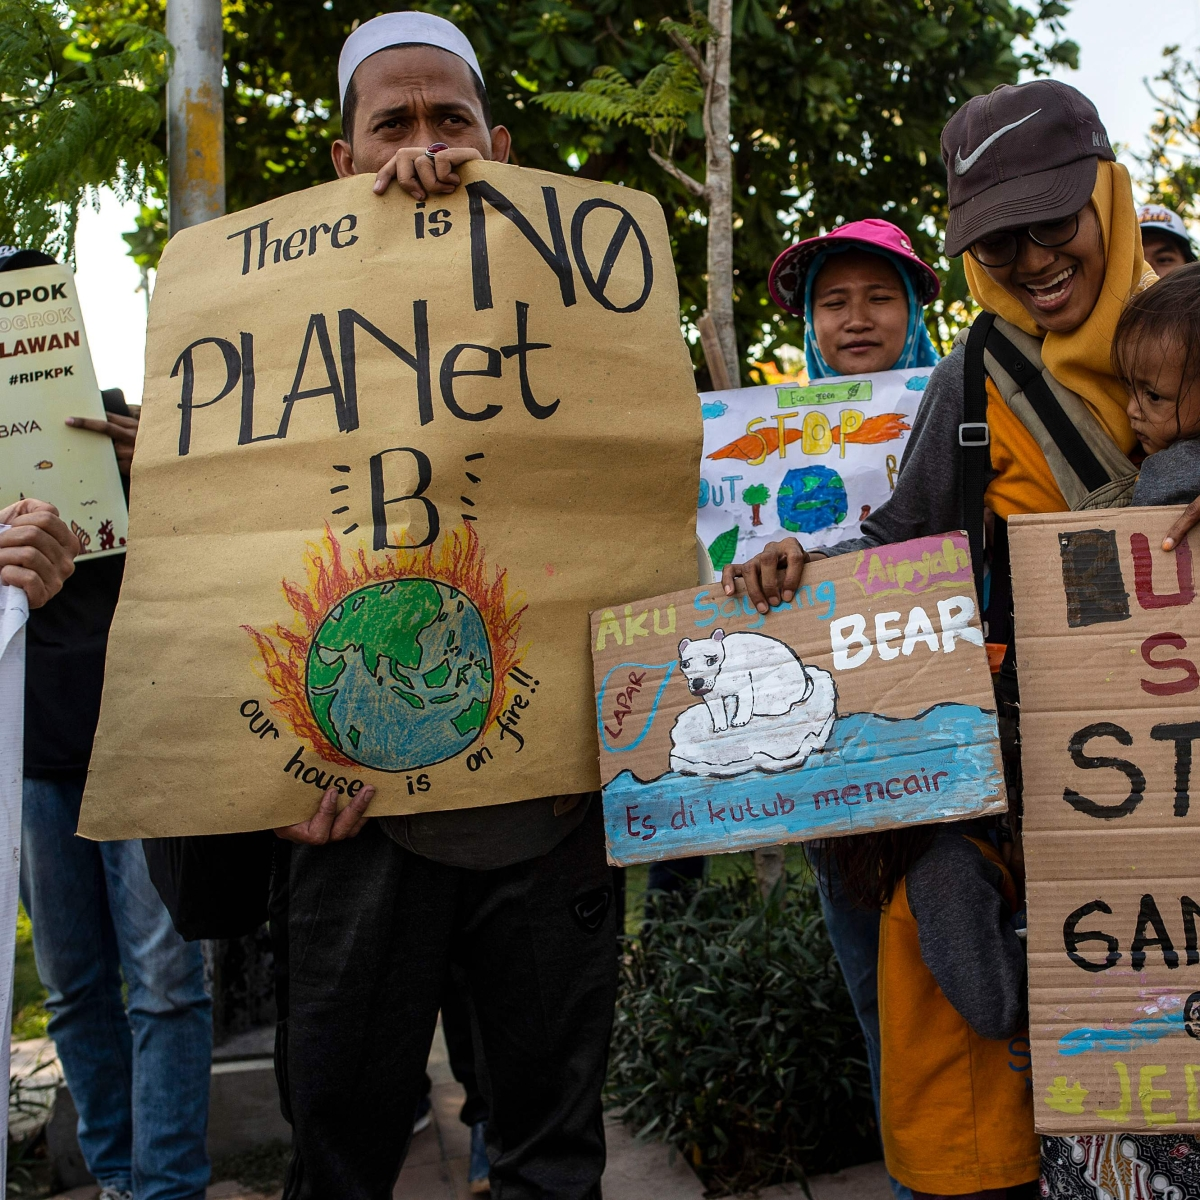 Earth Day 2020: What is the theme and significance of this day?